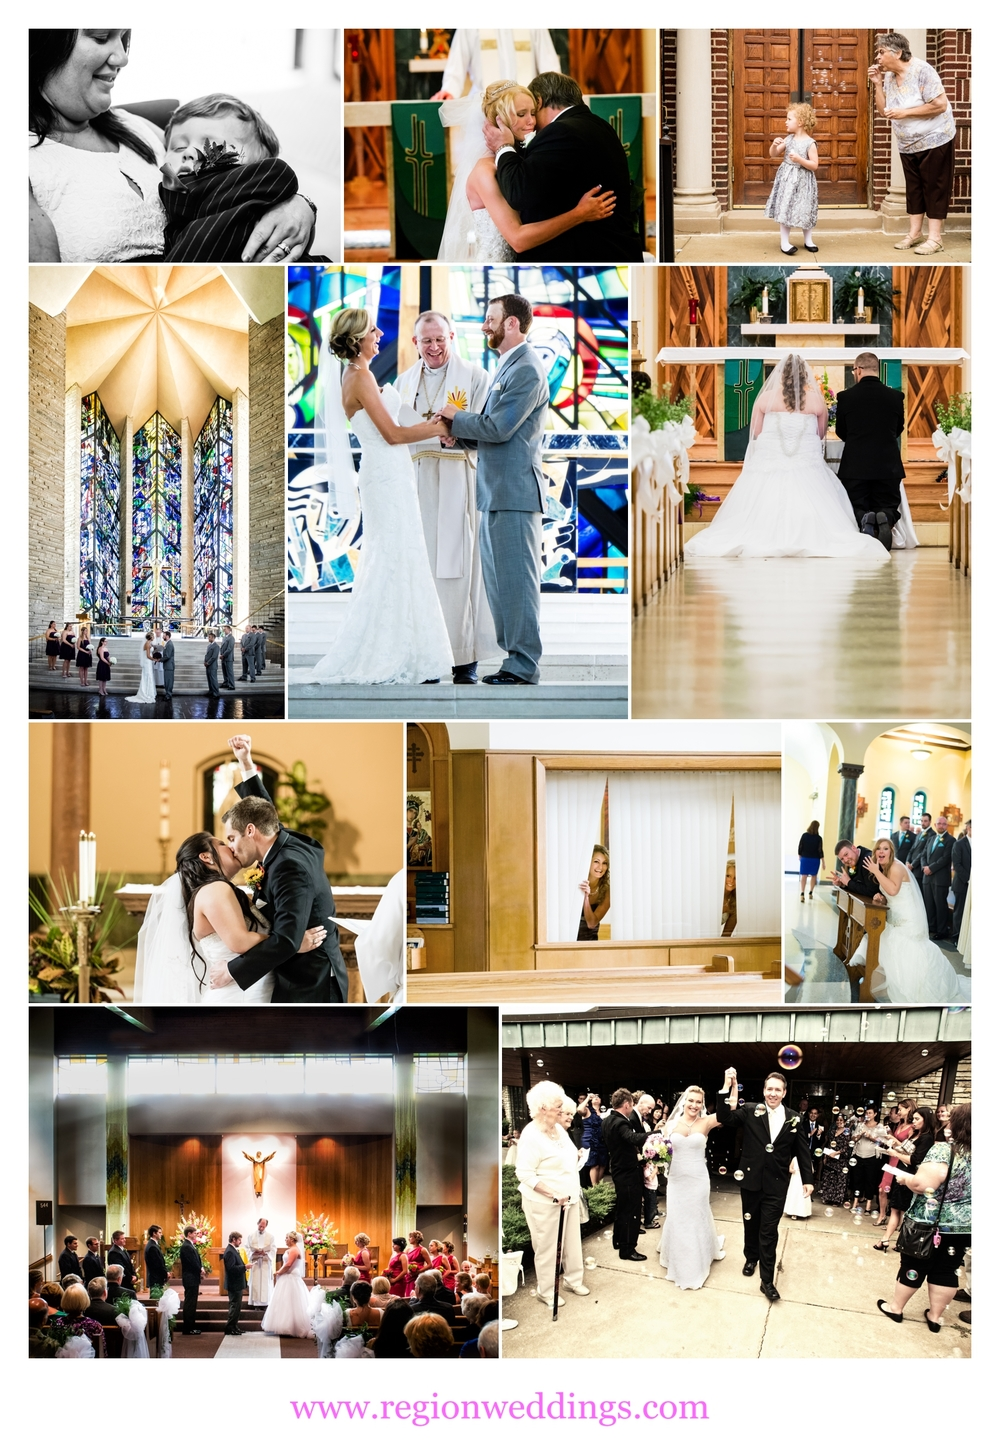 Wonderful moments at various church weddings.